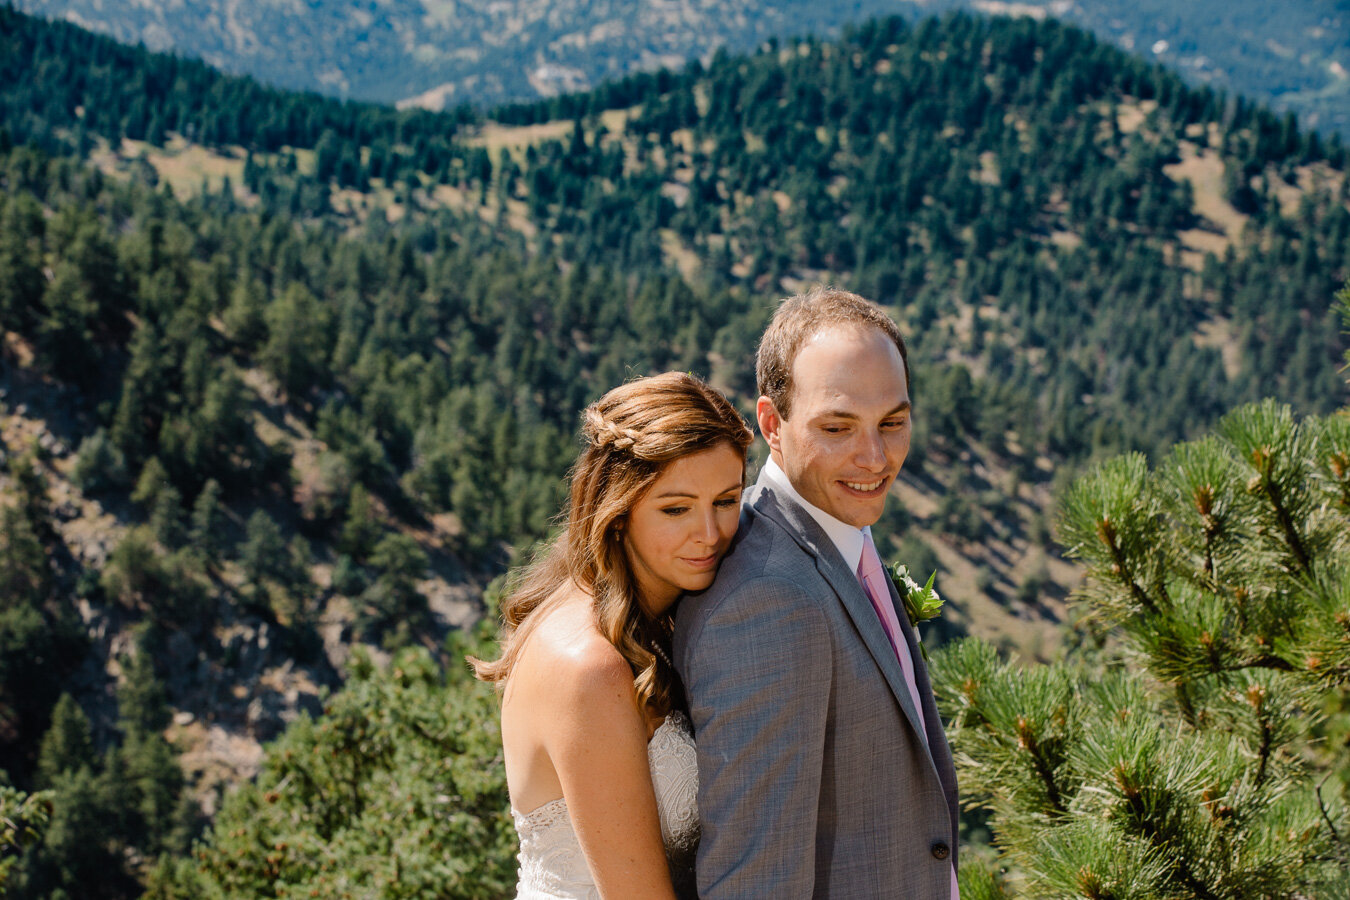 Rocky Mountain Intimate Wedding Ceremony at The Flagstaff House by Brittany | {Julia & Mike | Intimate Boulder, Colorado Wedding}